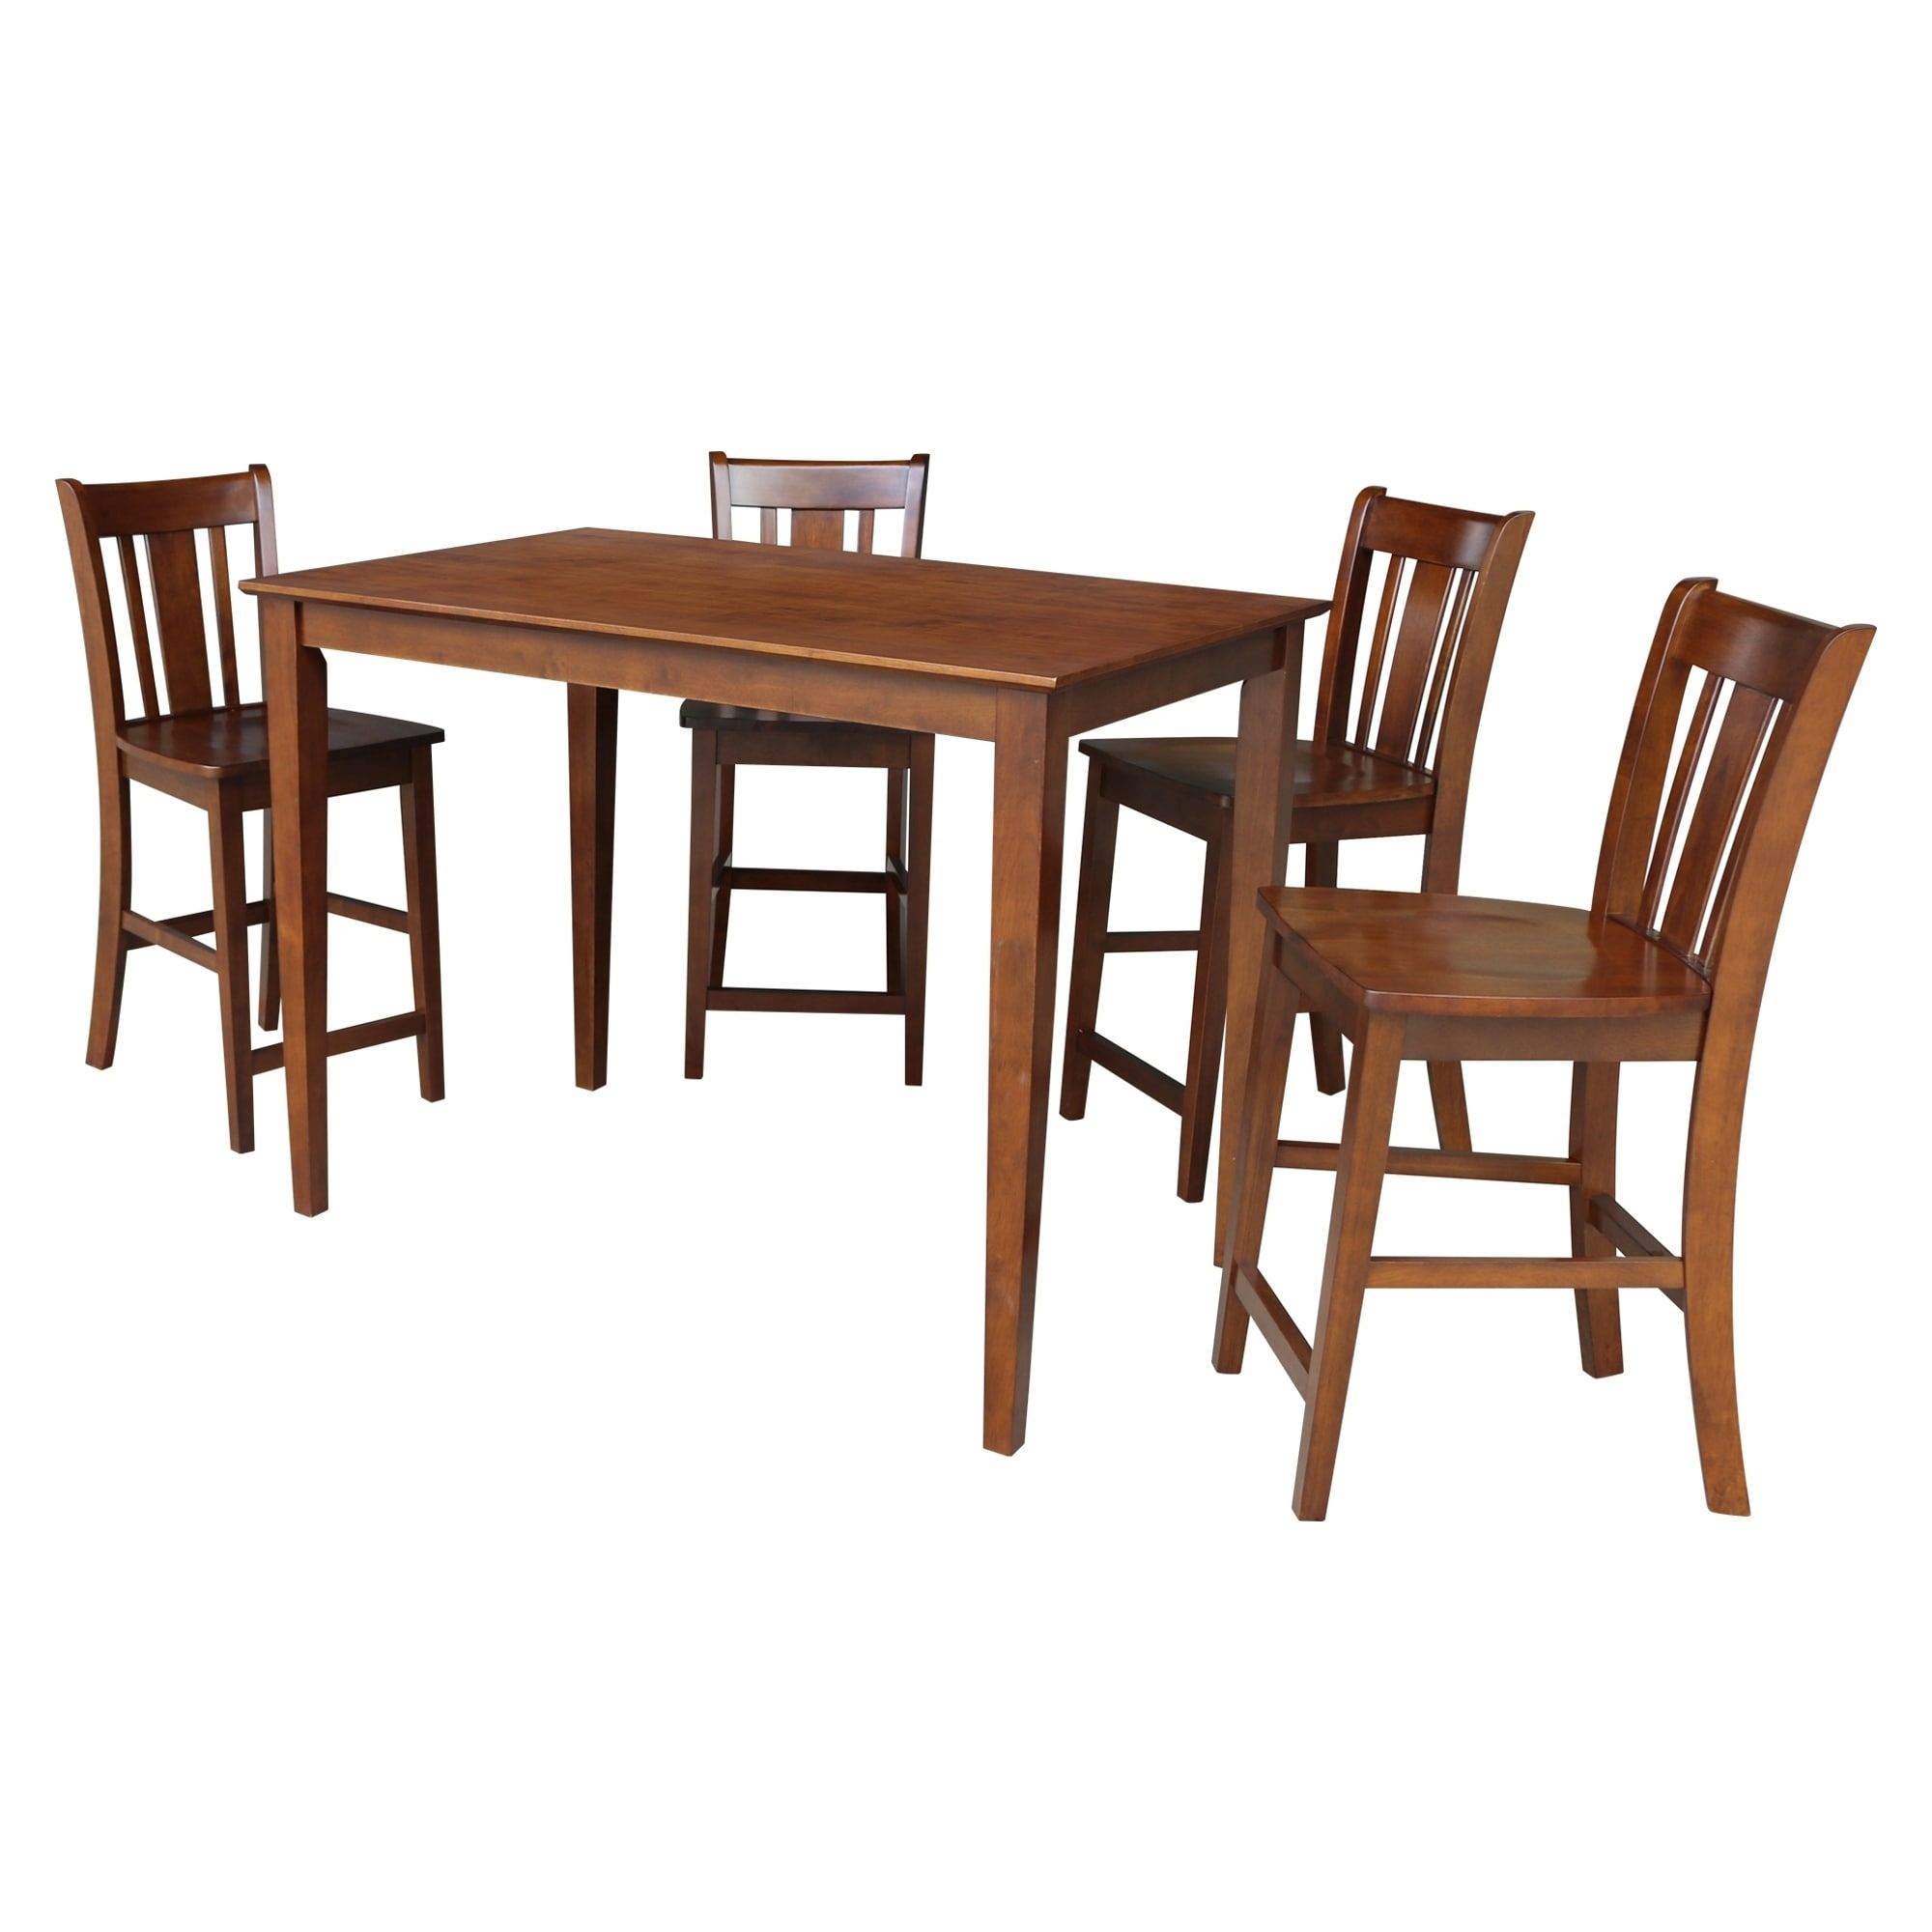 Admirable 30X48 Counter Height Dining Table With 4 Counter Height Stools In Espresso Lamtechconsult Wood Chair Design Ideas Lamtechconsultcom